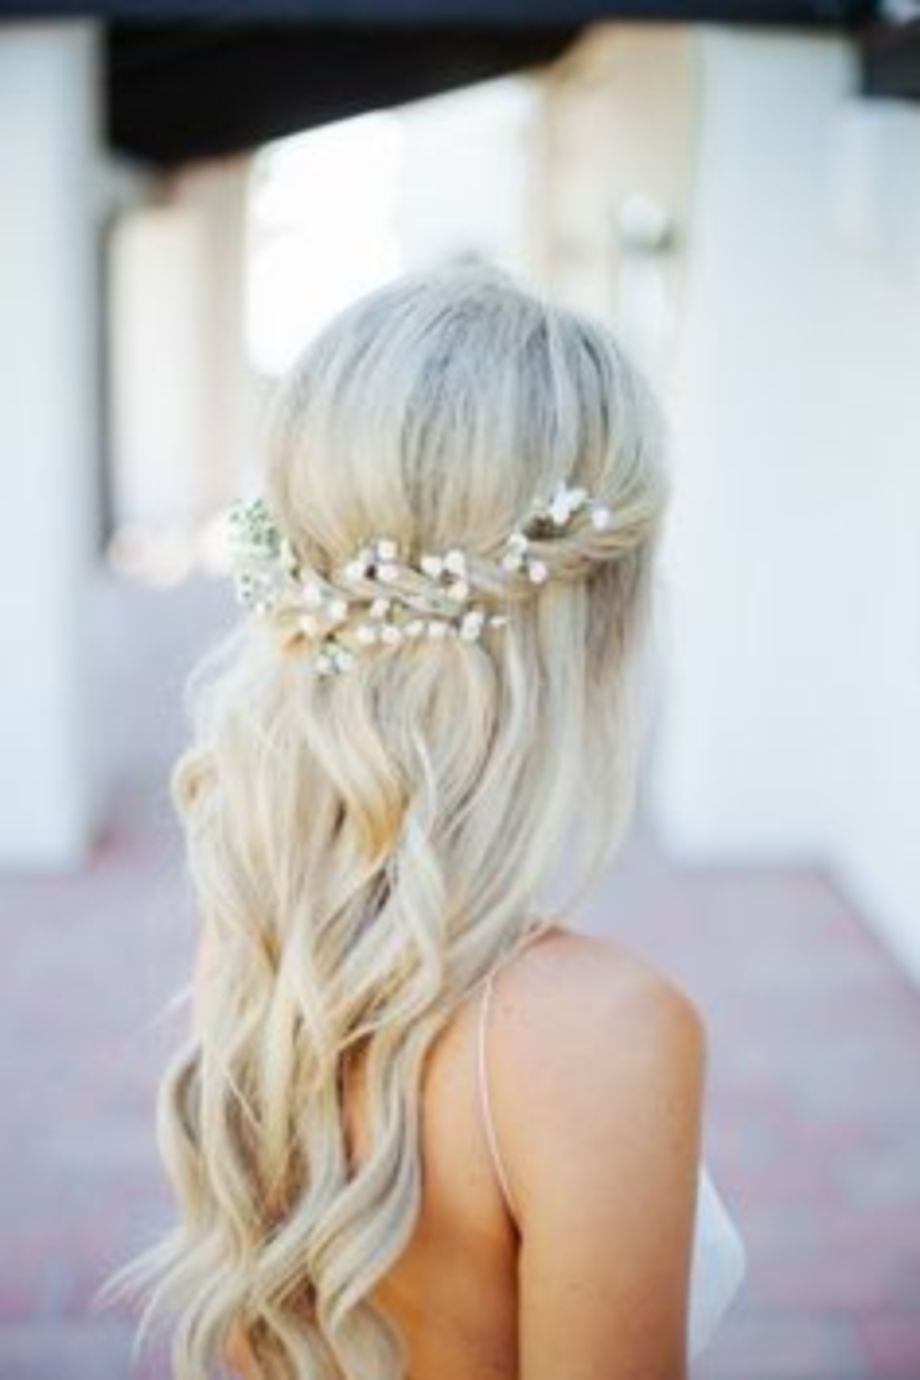 76 romantic casual beach wedding hairstyles ideas pinterest nice 76 romantic casual beach wedding hairstyles ideas httpsviscawedding2017072076 romantic casual beach wedding hairstyles ideas junglespirit Images